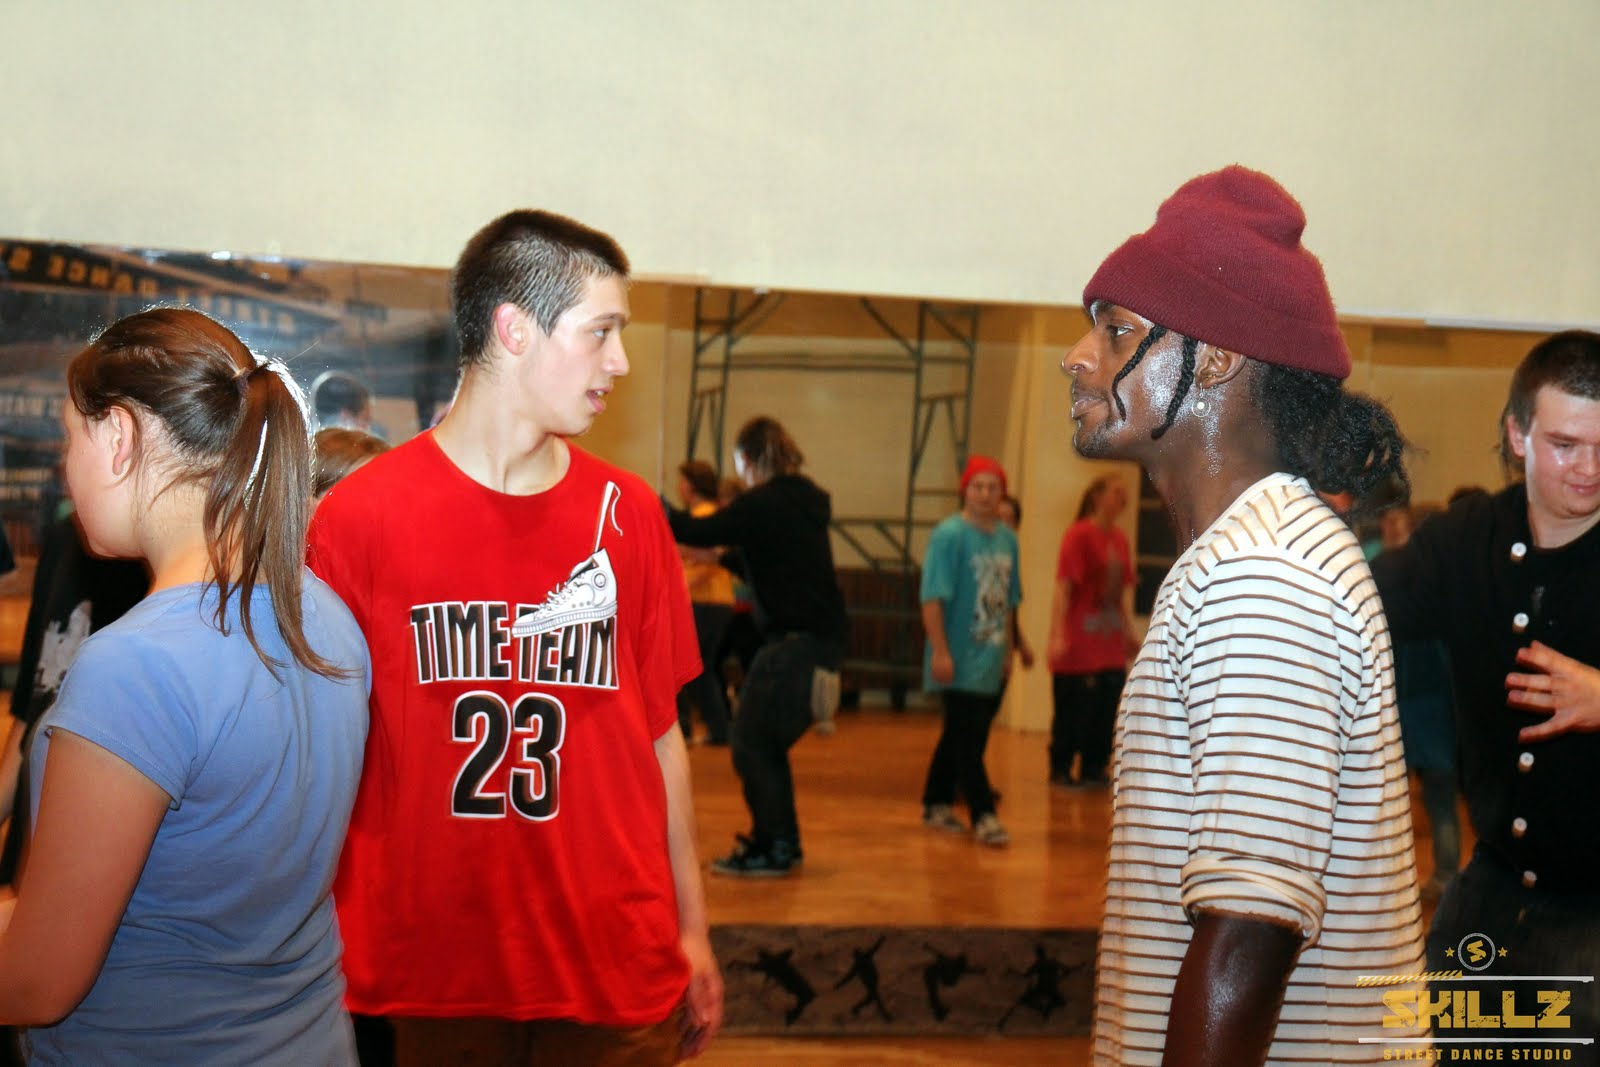 Hip- Hop workshop with Shaadow (UK) - IMG_1893.jpg